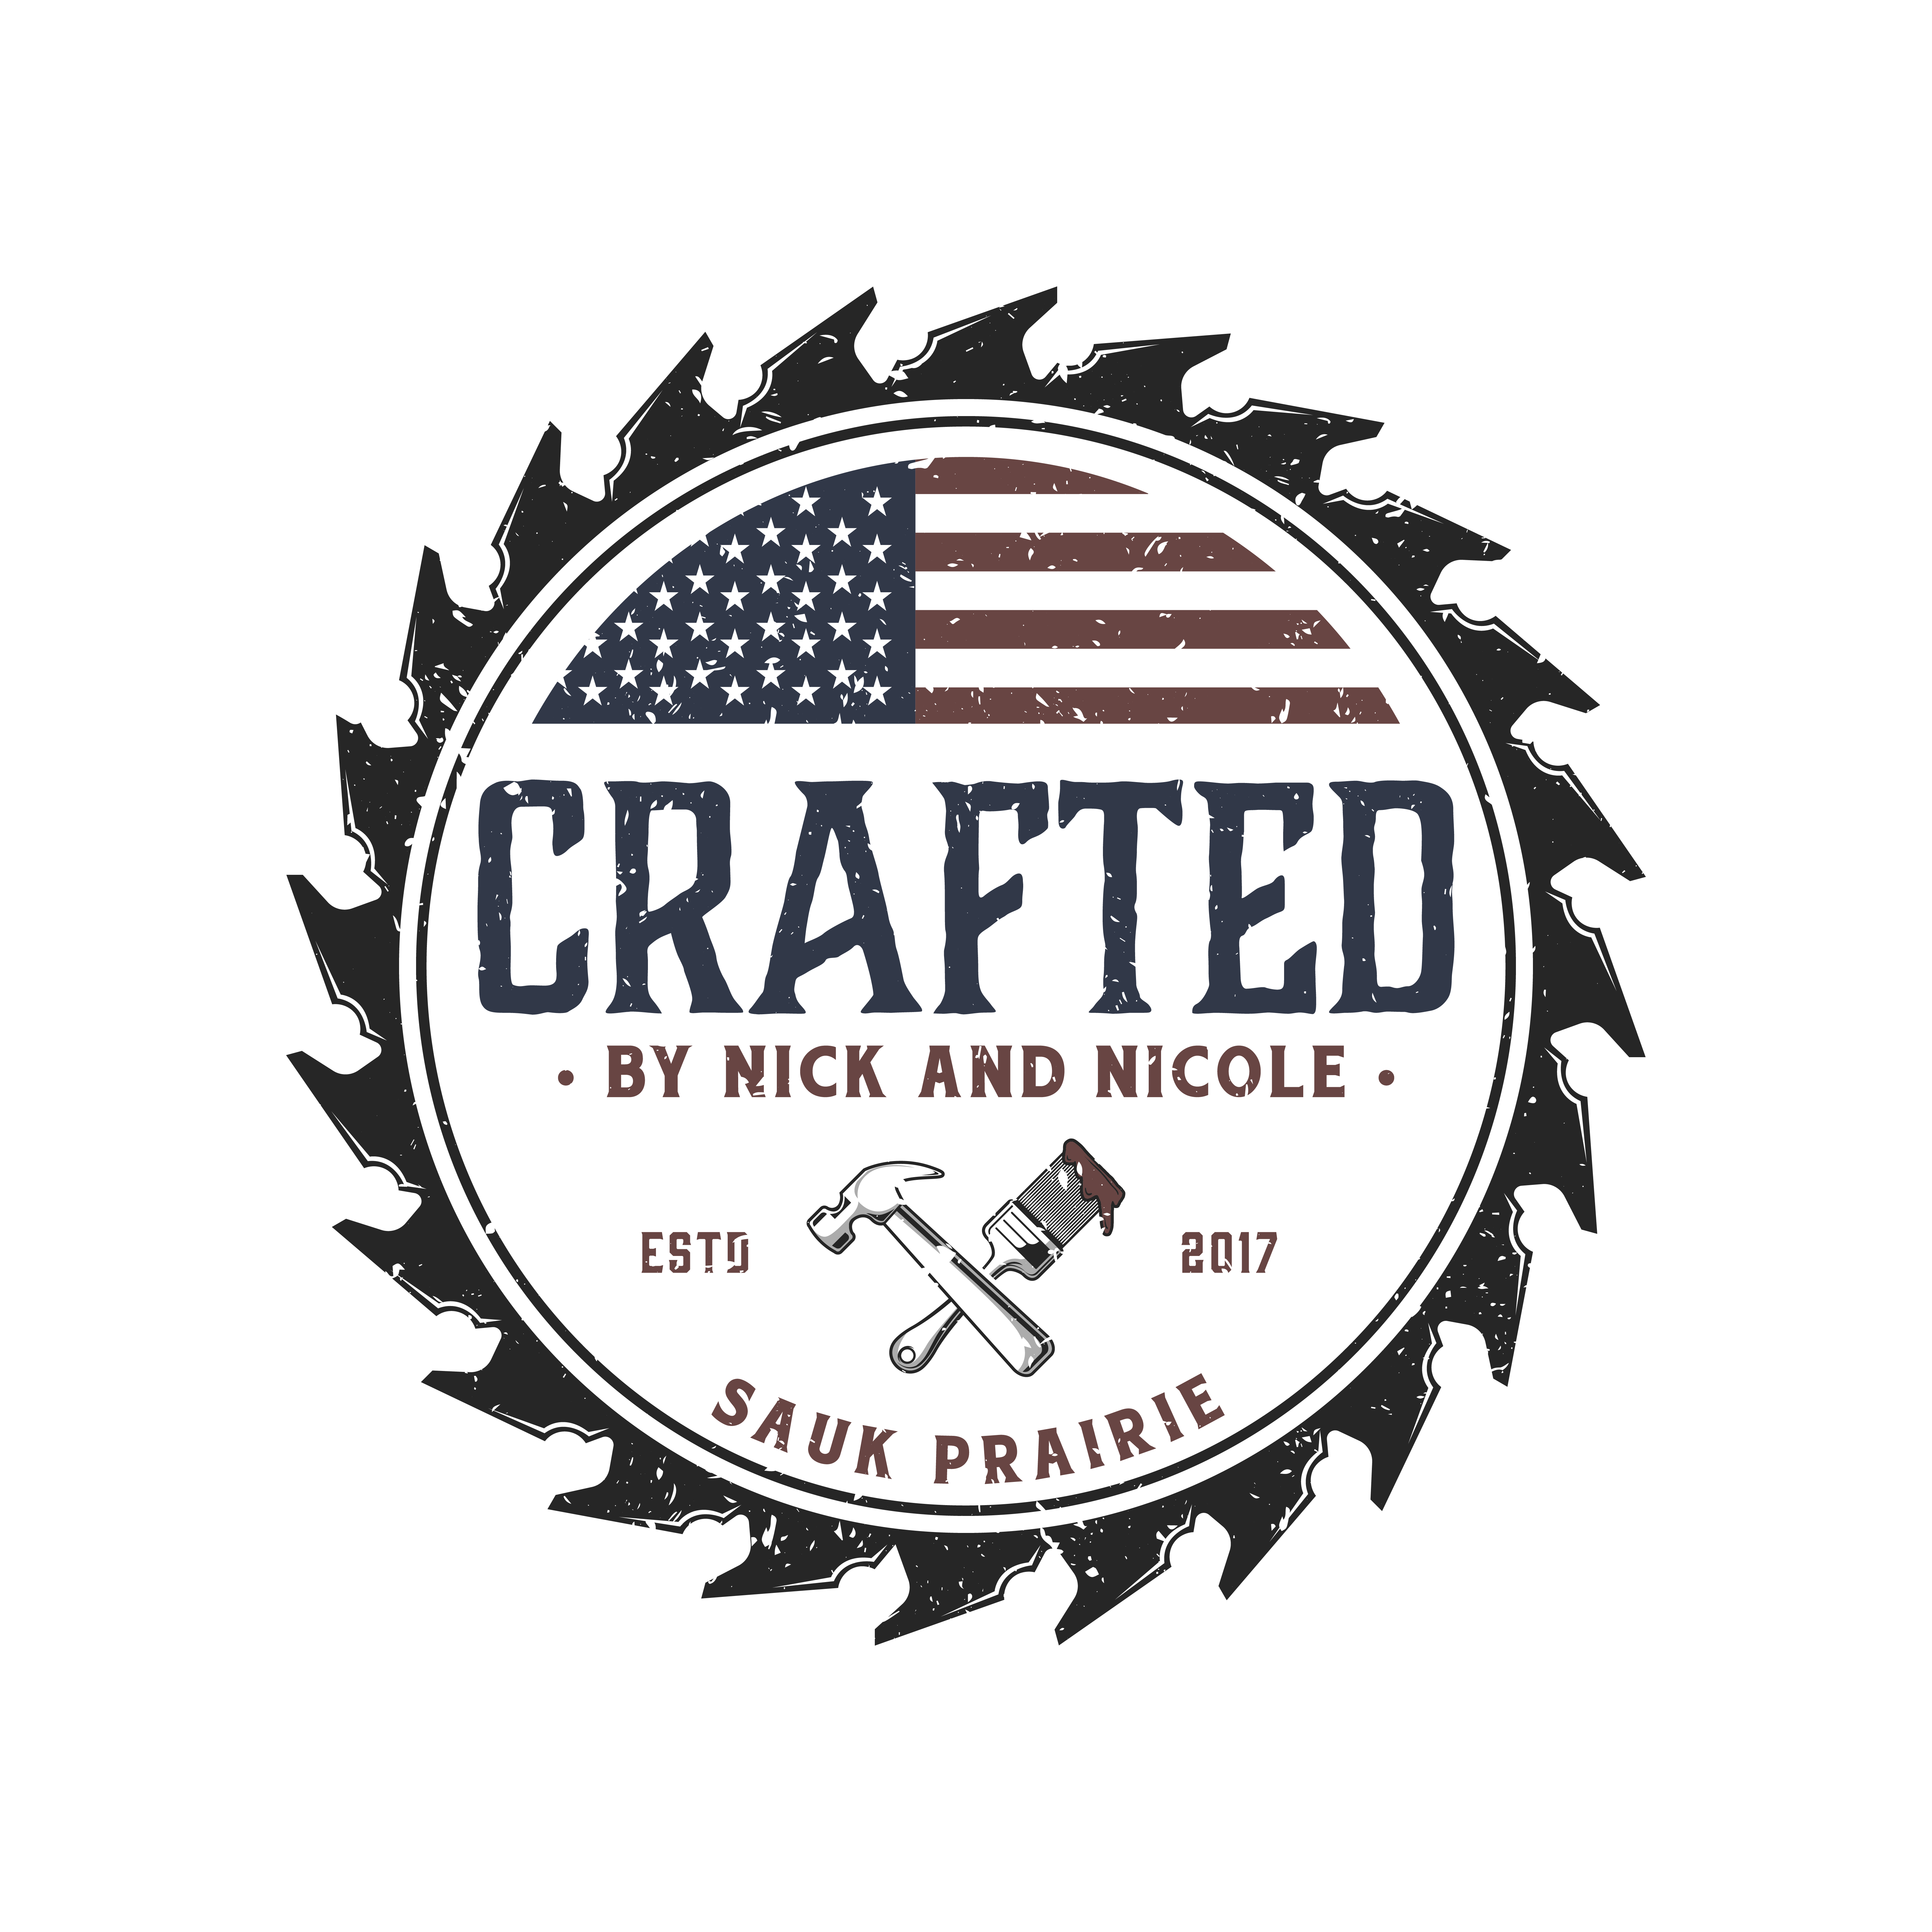 Mix of elegant wording, color, and patriotism for family woodworking business.